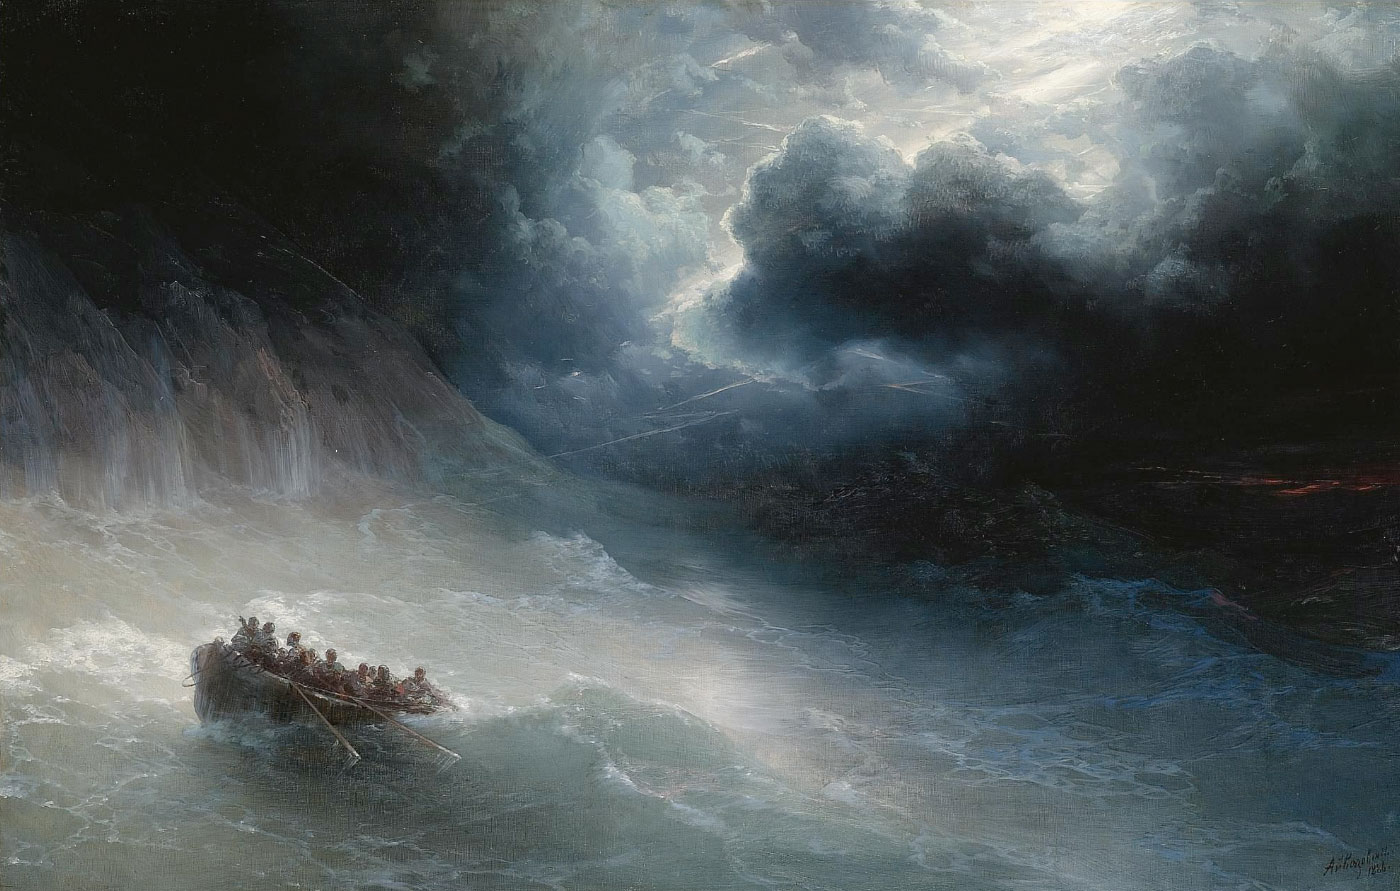 https://uploads3.wikiart.org/images/ivan-aivazovsky/the-wrath-of-the-seas-1886.jpg